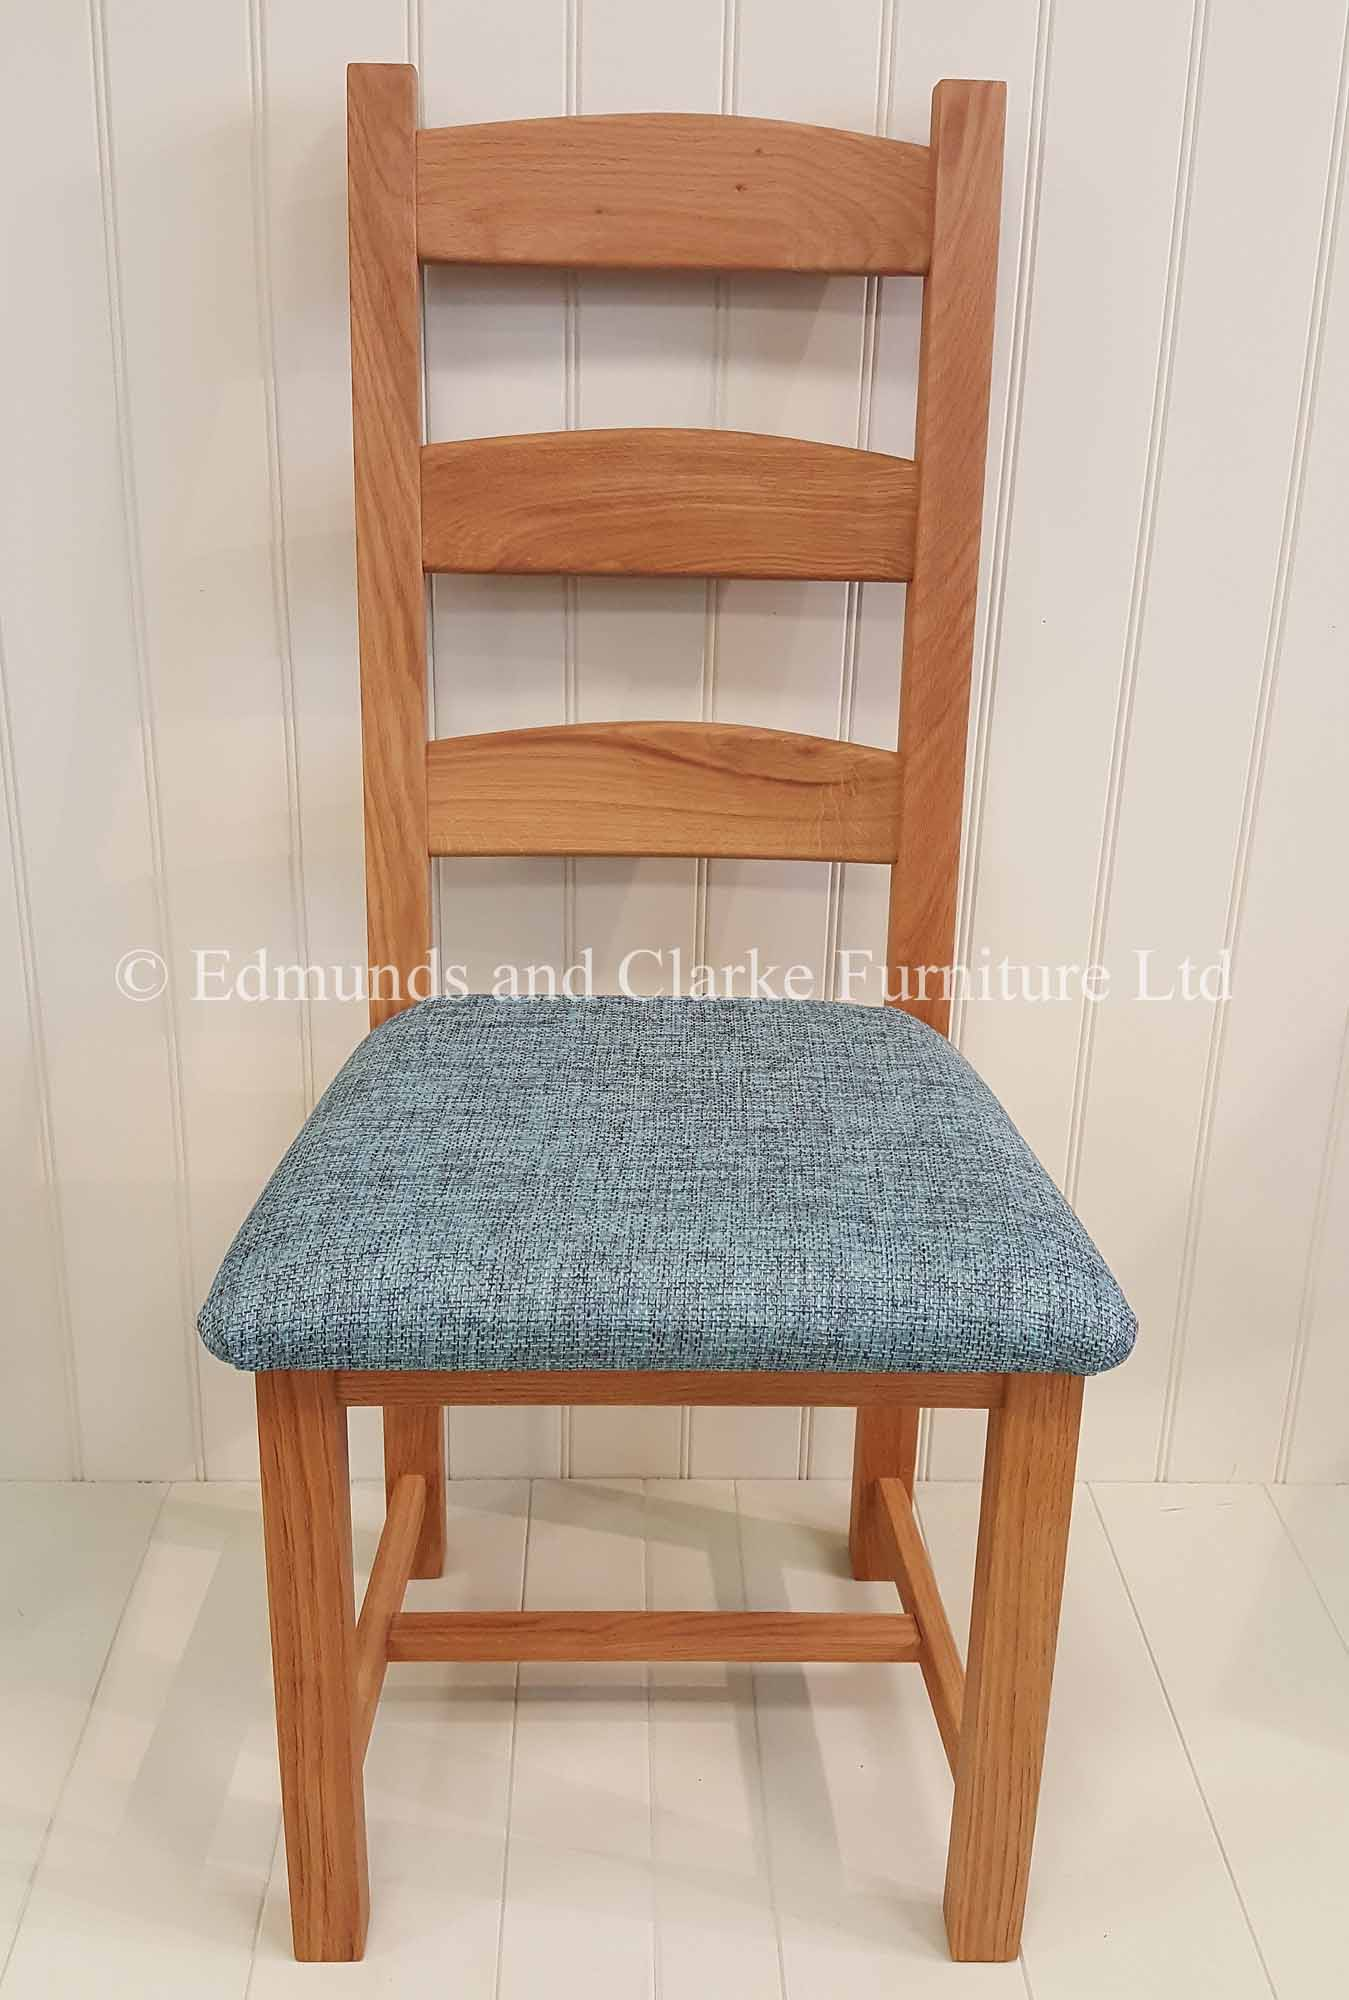 Oak provence chair with a choice of fabric or leather seats